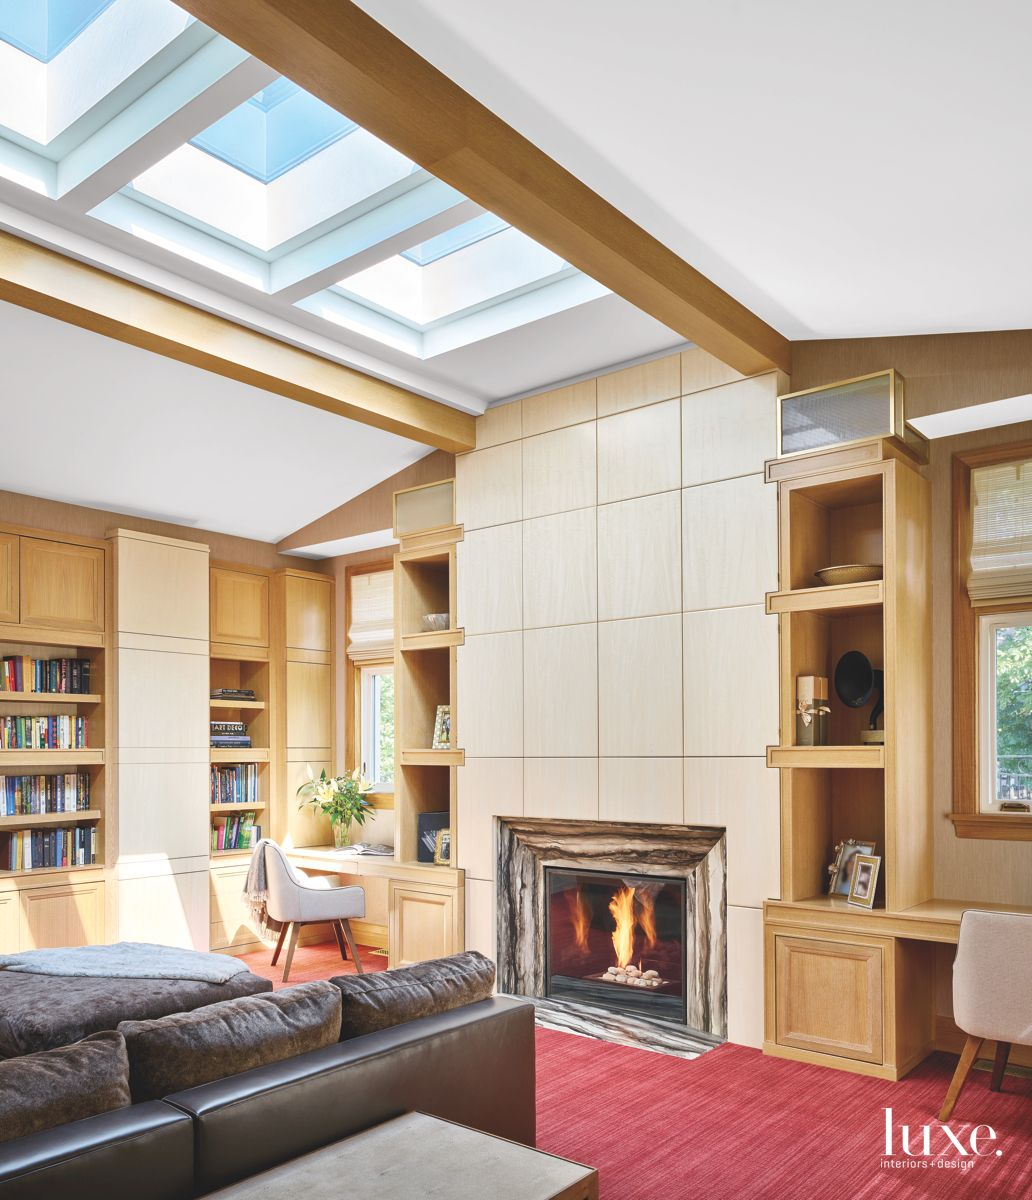 Skylight Light Wooden Den with Fireplace